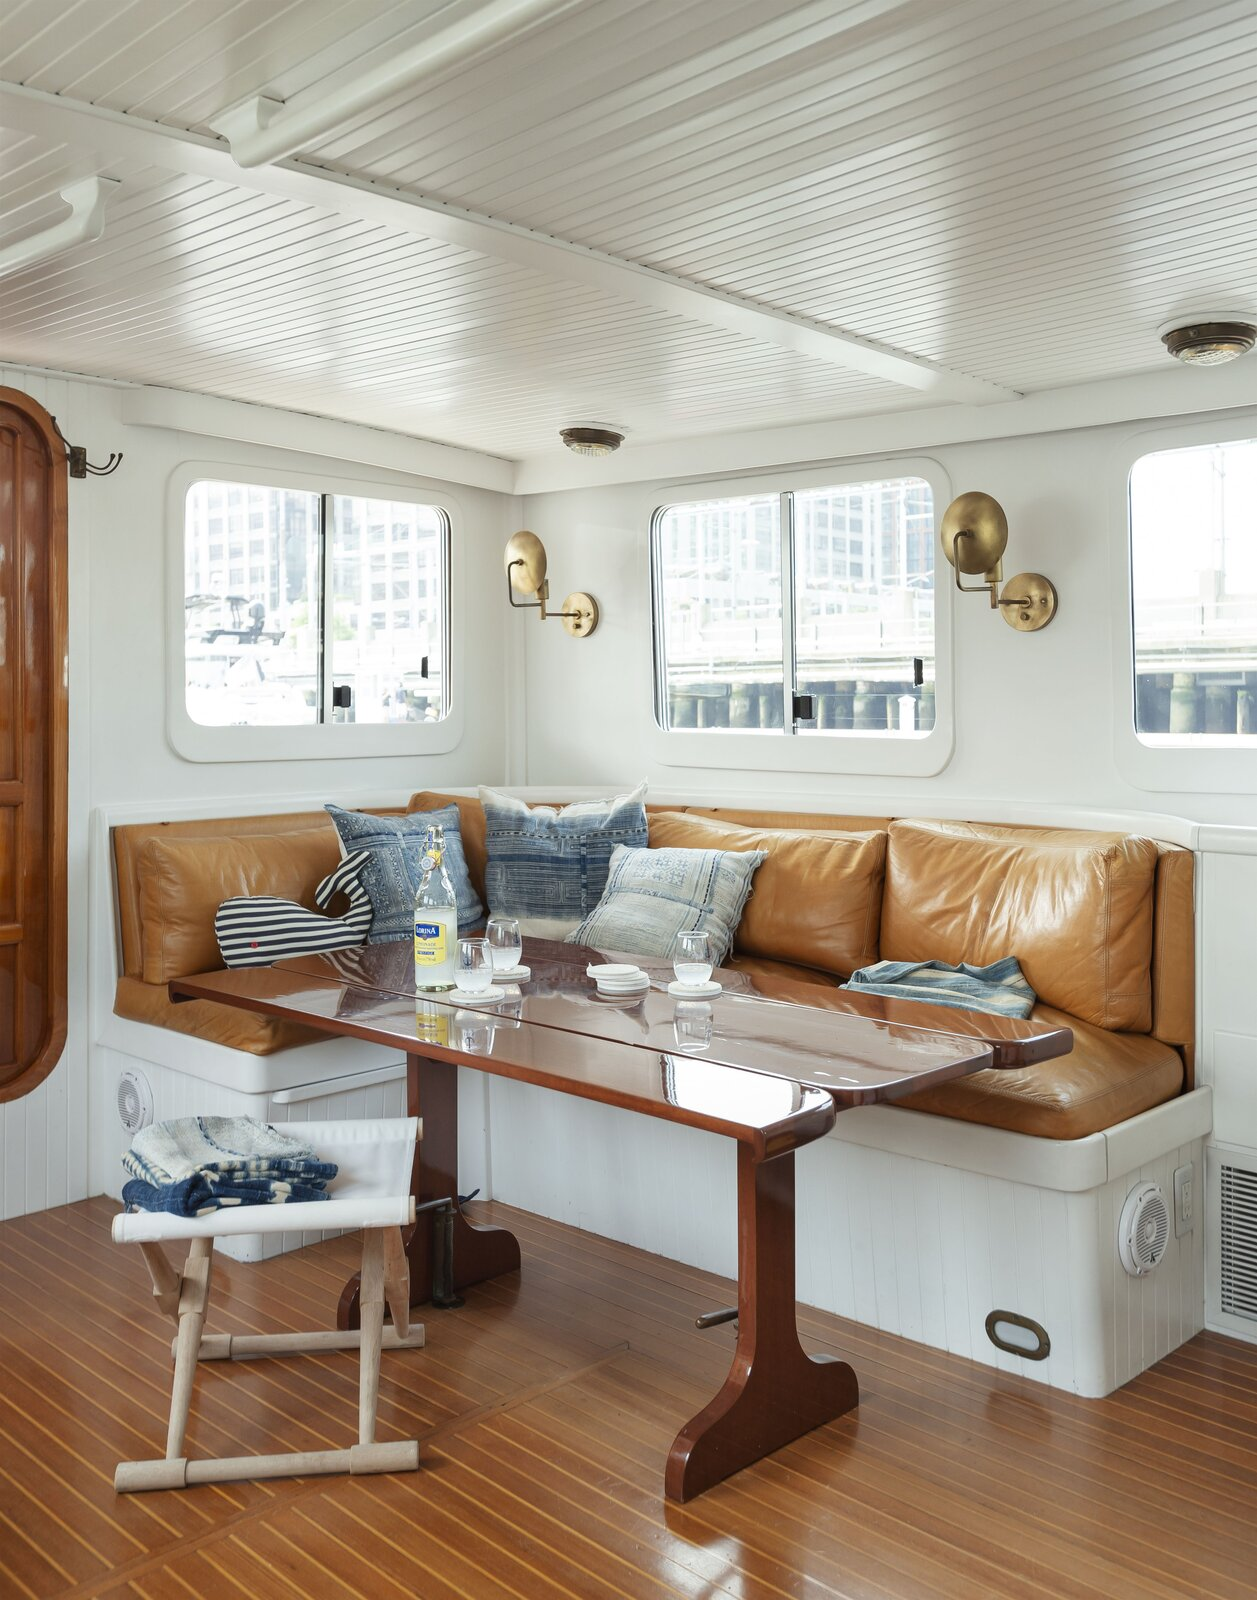 Lucy the Tugboat dining area